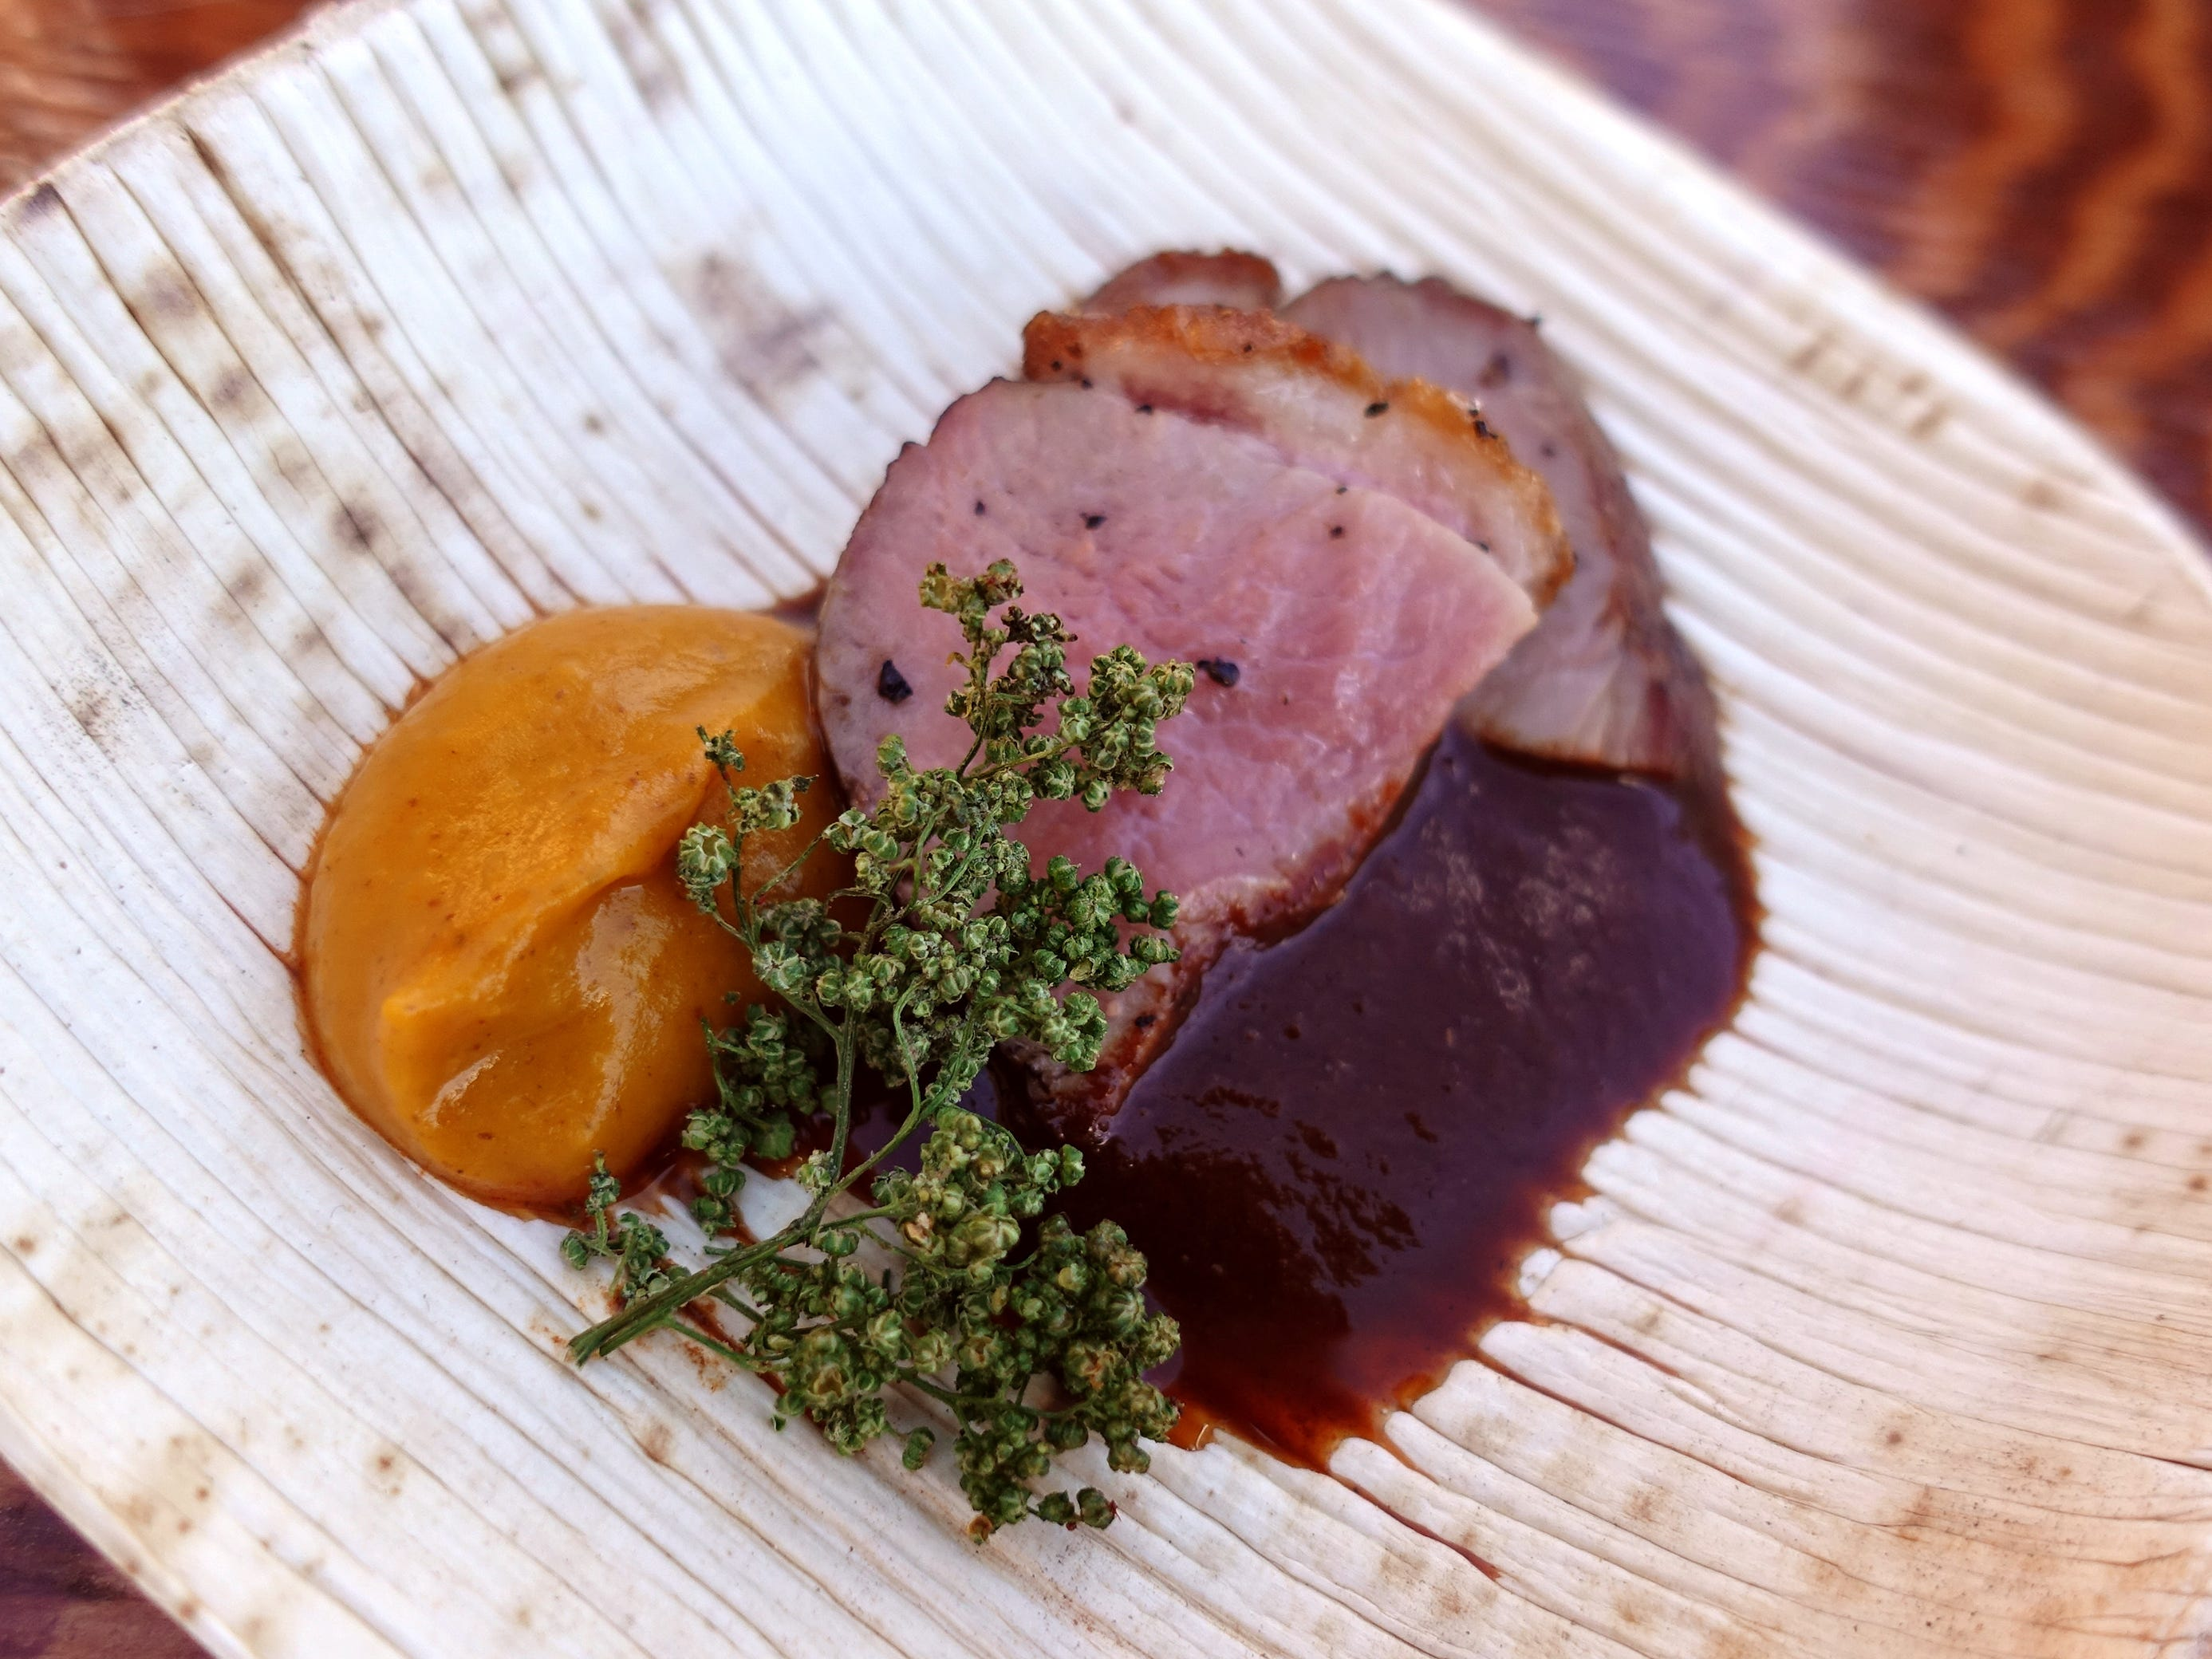 Duck with chicatanas sauce, smoked mole and sweet potato puree from Barrio Cafe Gran Reserva at the 2019 Devour Culinary Classic at the Desert Botanical Garden in Phoenix.